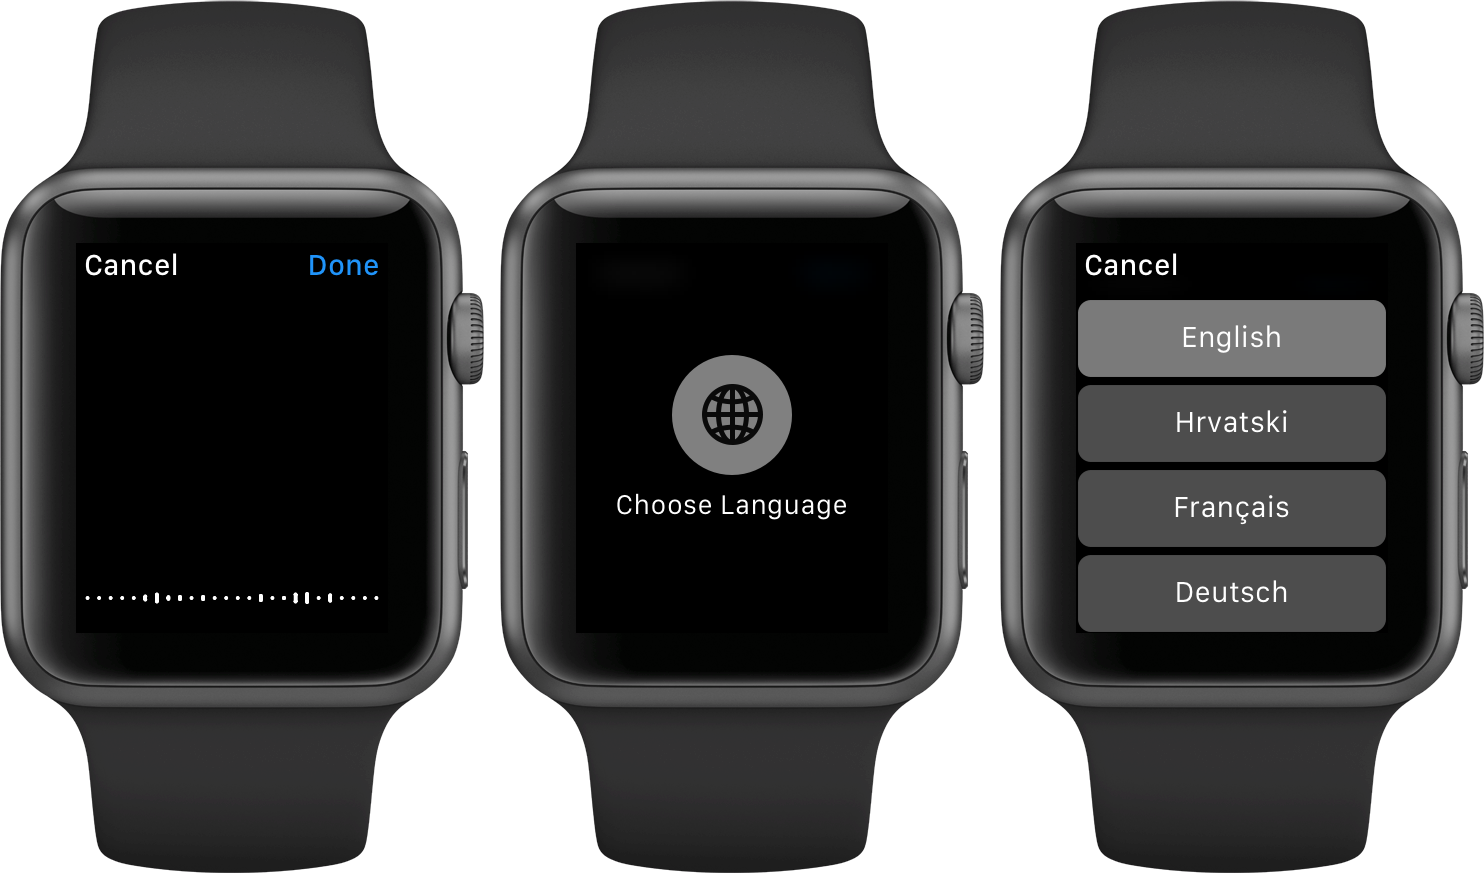 watchOS 2 Dictation language Apple Watch screenshot 002